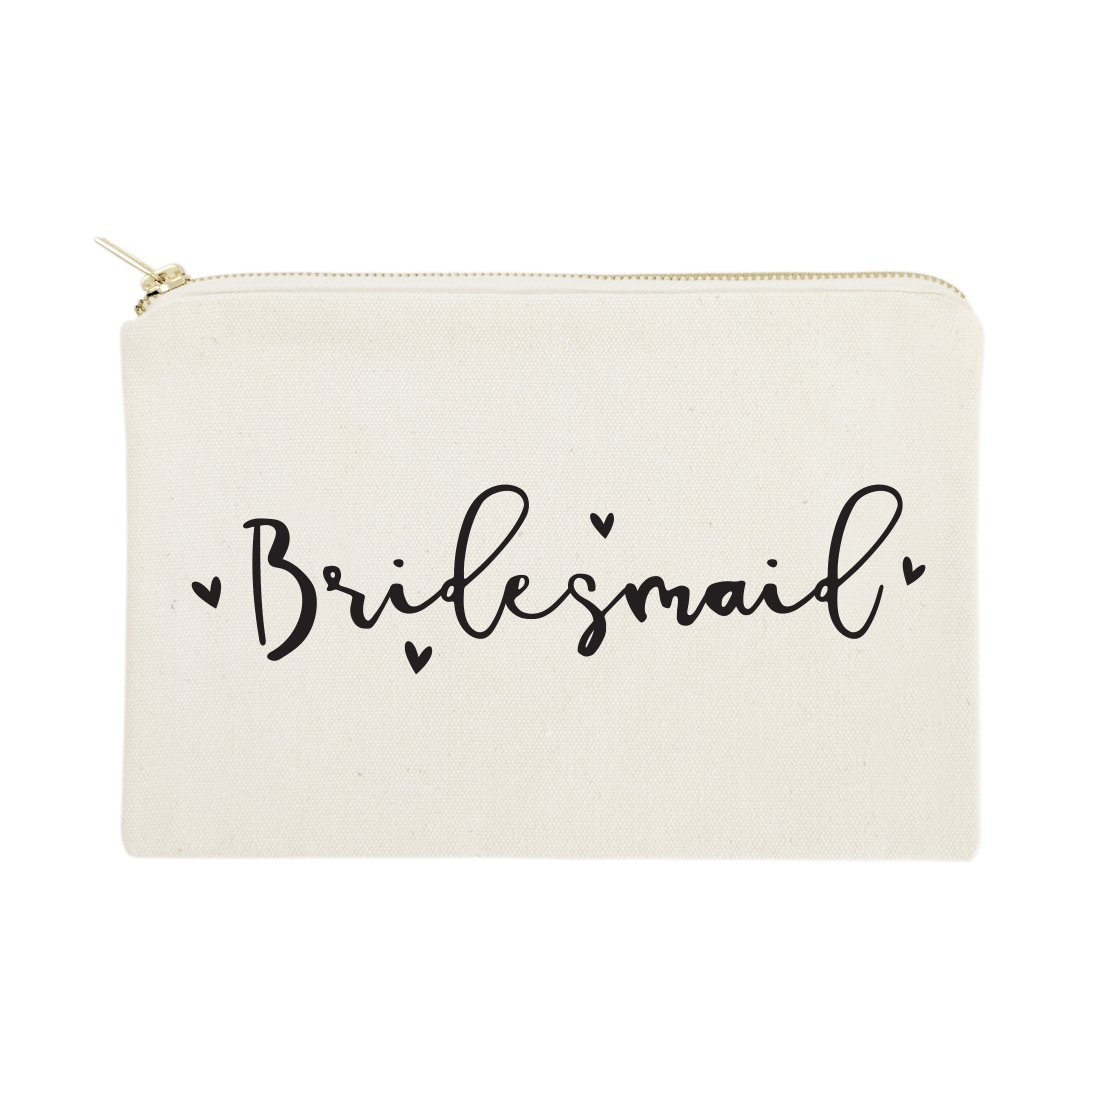 The Cotton & Canvas Co. Bridesmaid Wedding Cosmetic Bag, Bridal Party Gift and Travel Make Up Pouch